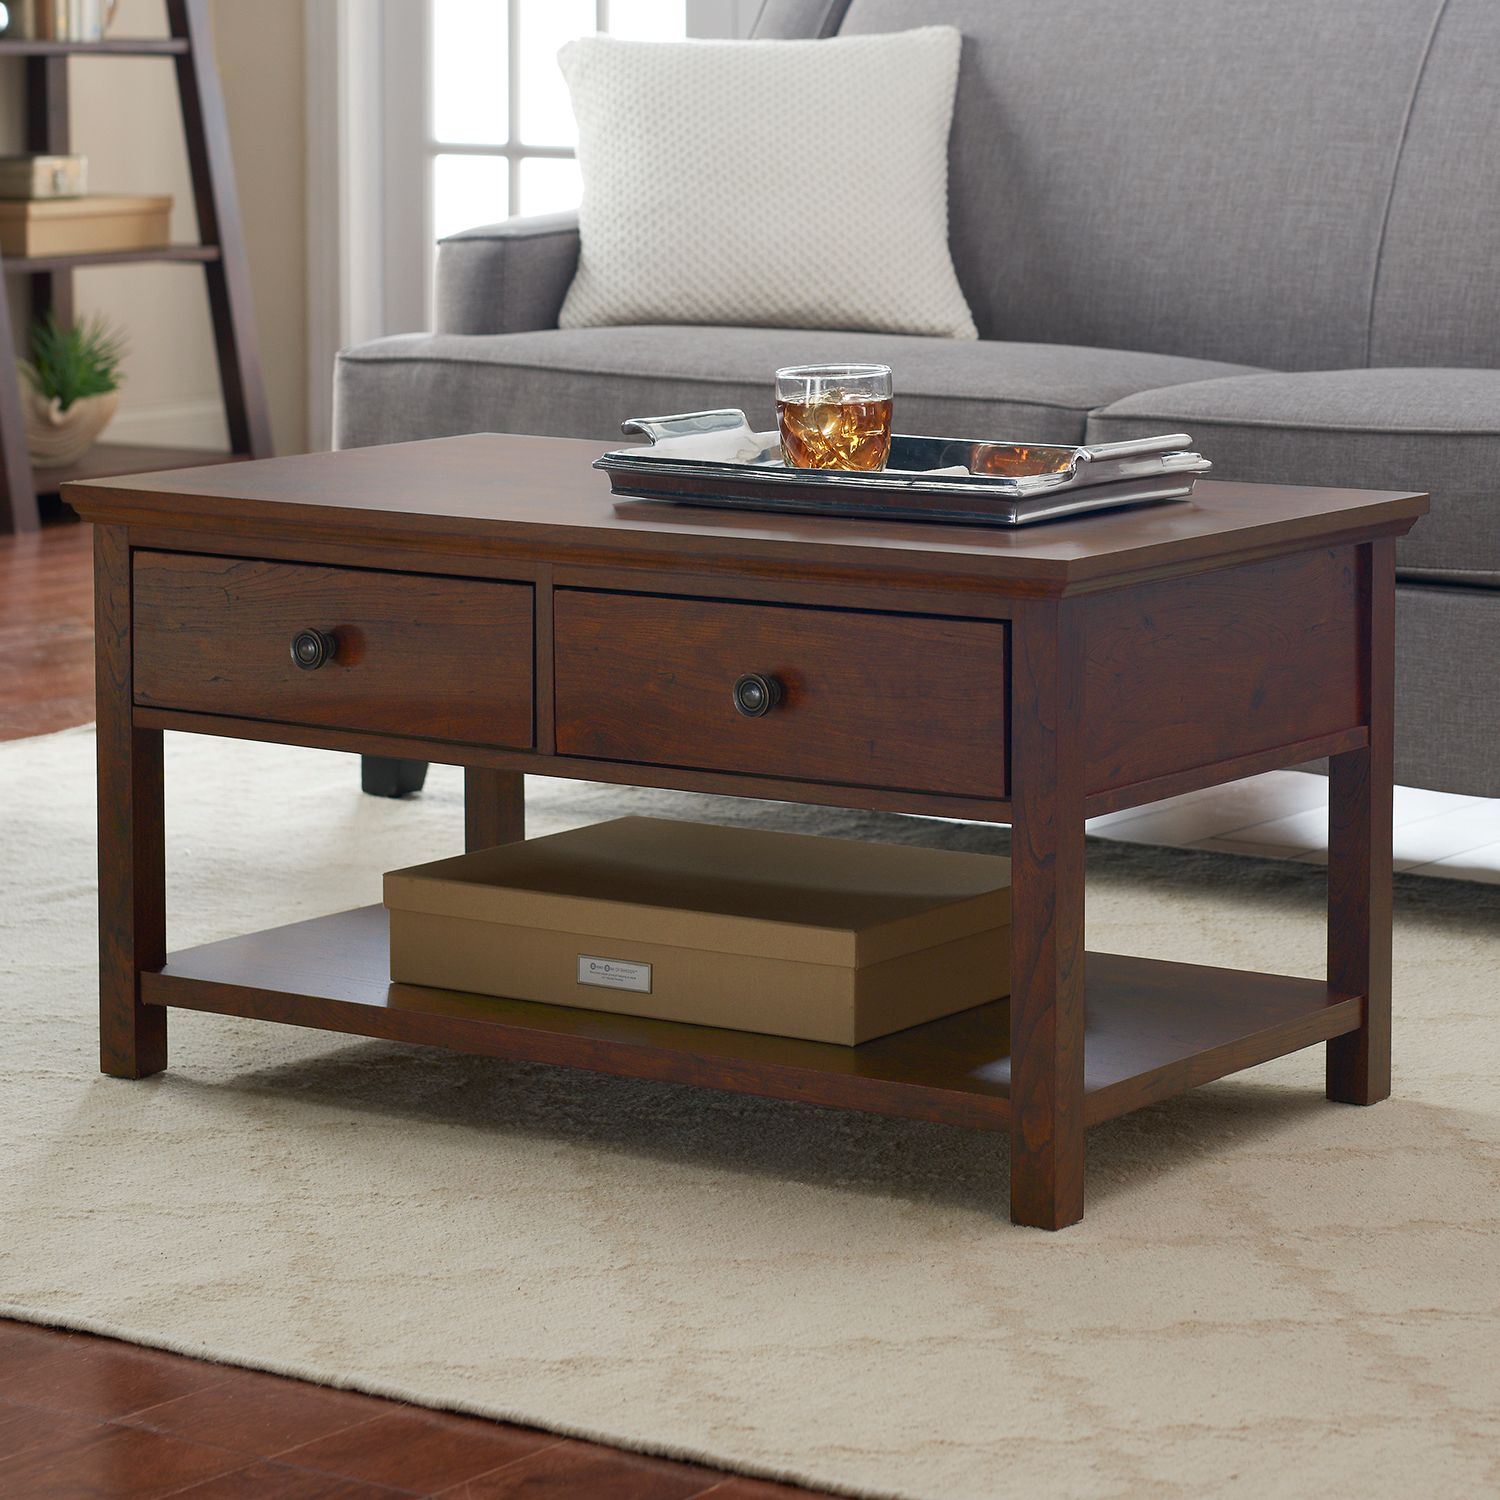 Living Room Coffee TablesTables FurnitureKohls